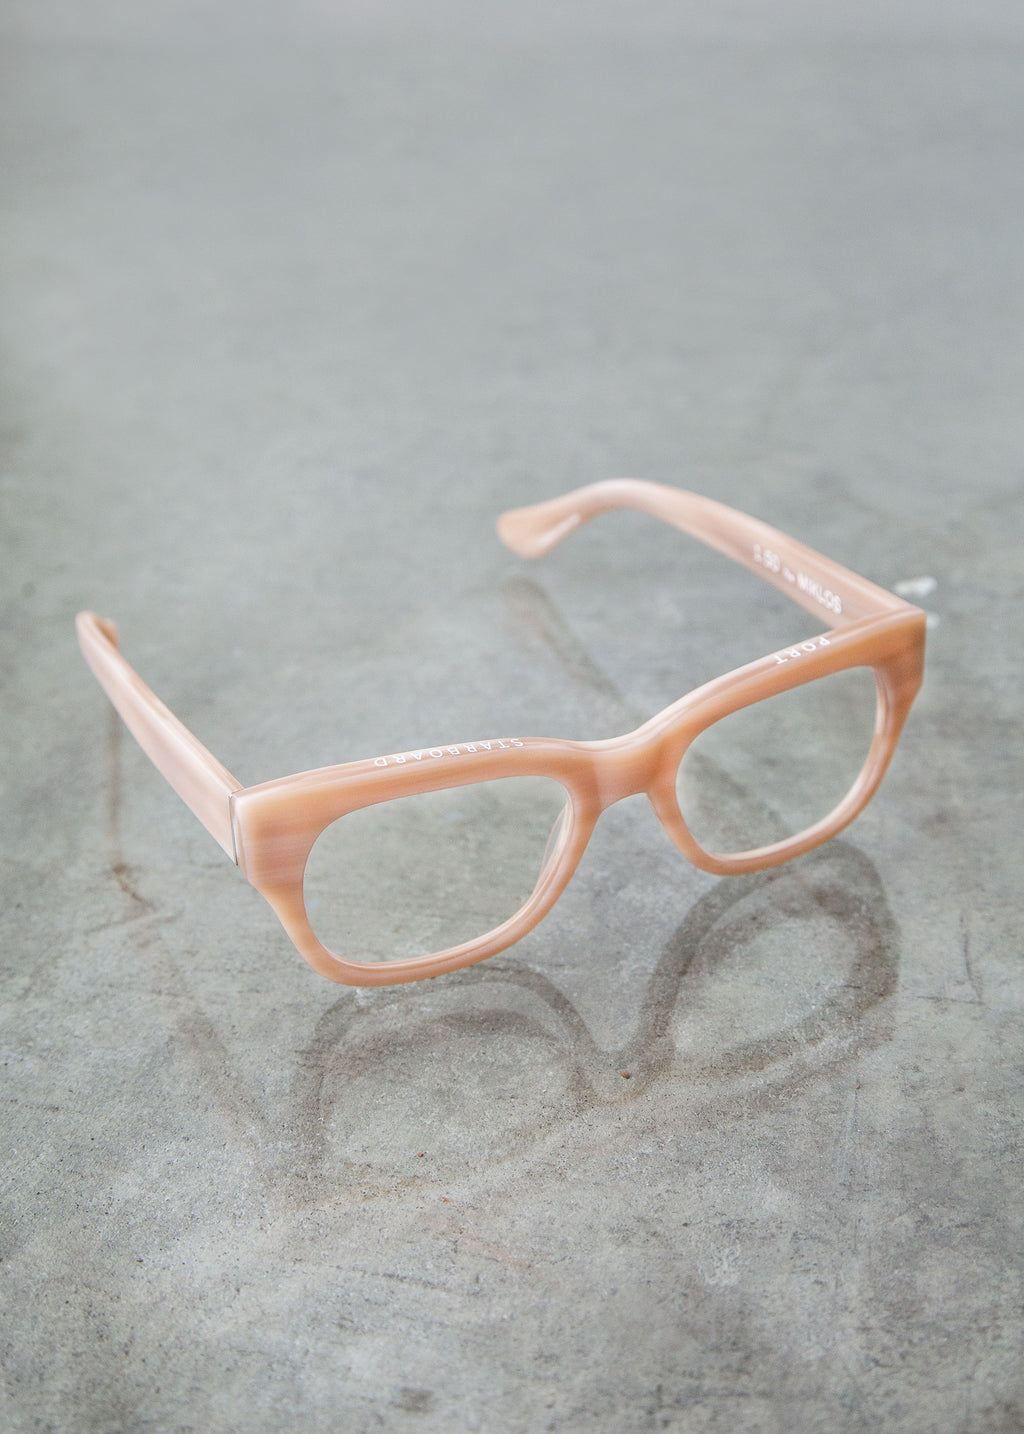 Miklos Readers in Bone White - SOLD OUT